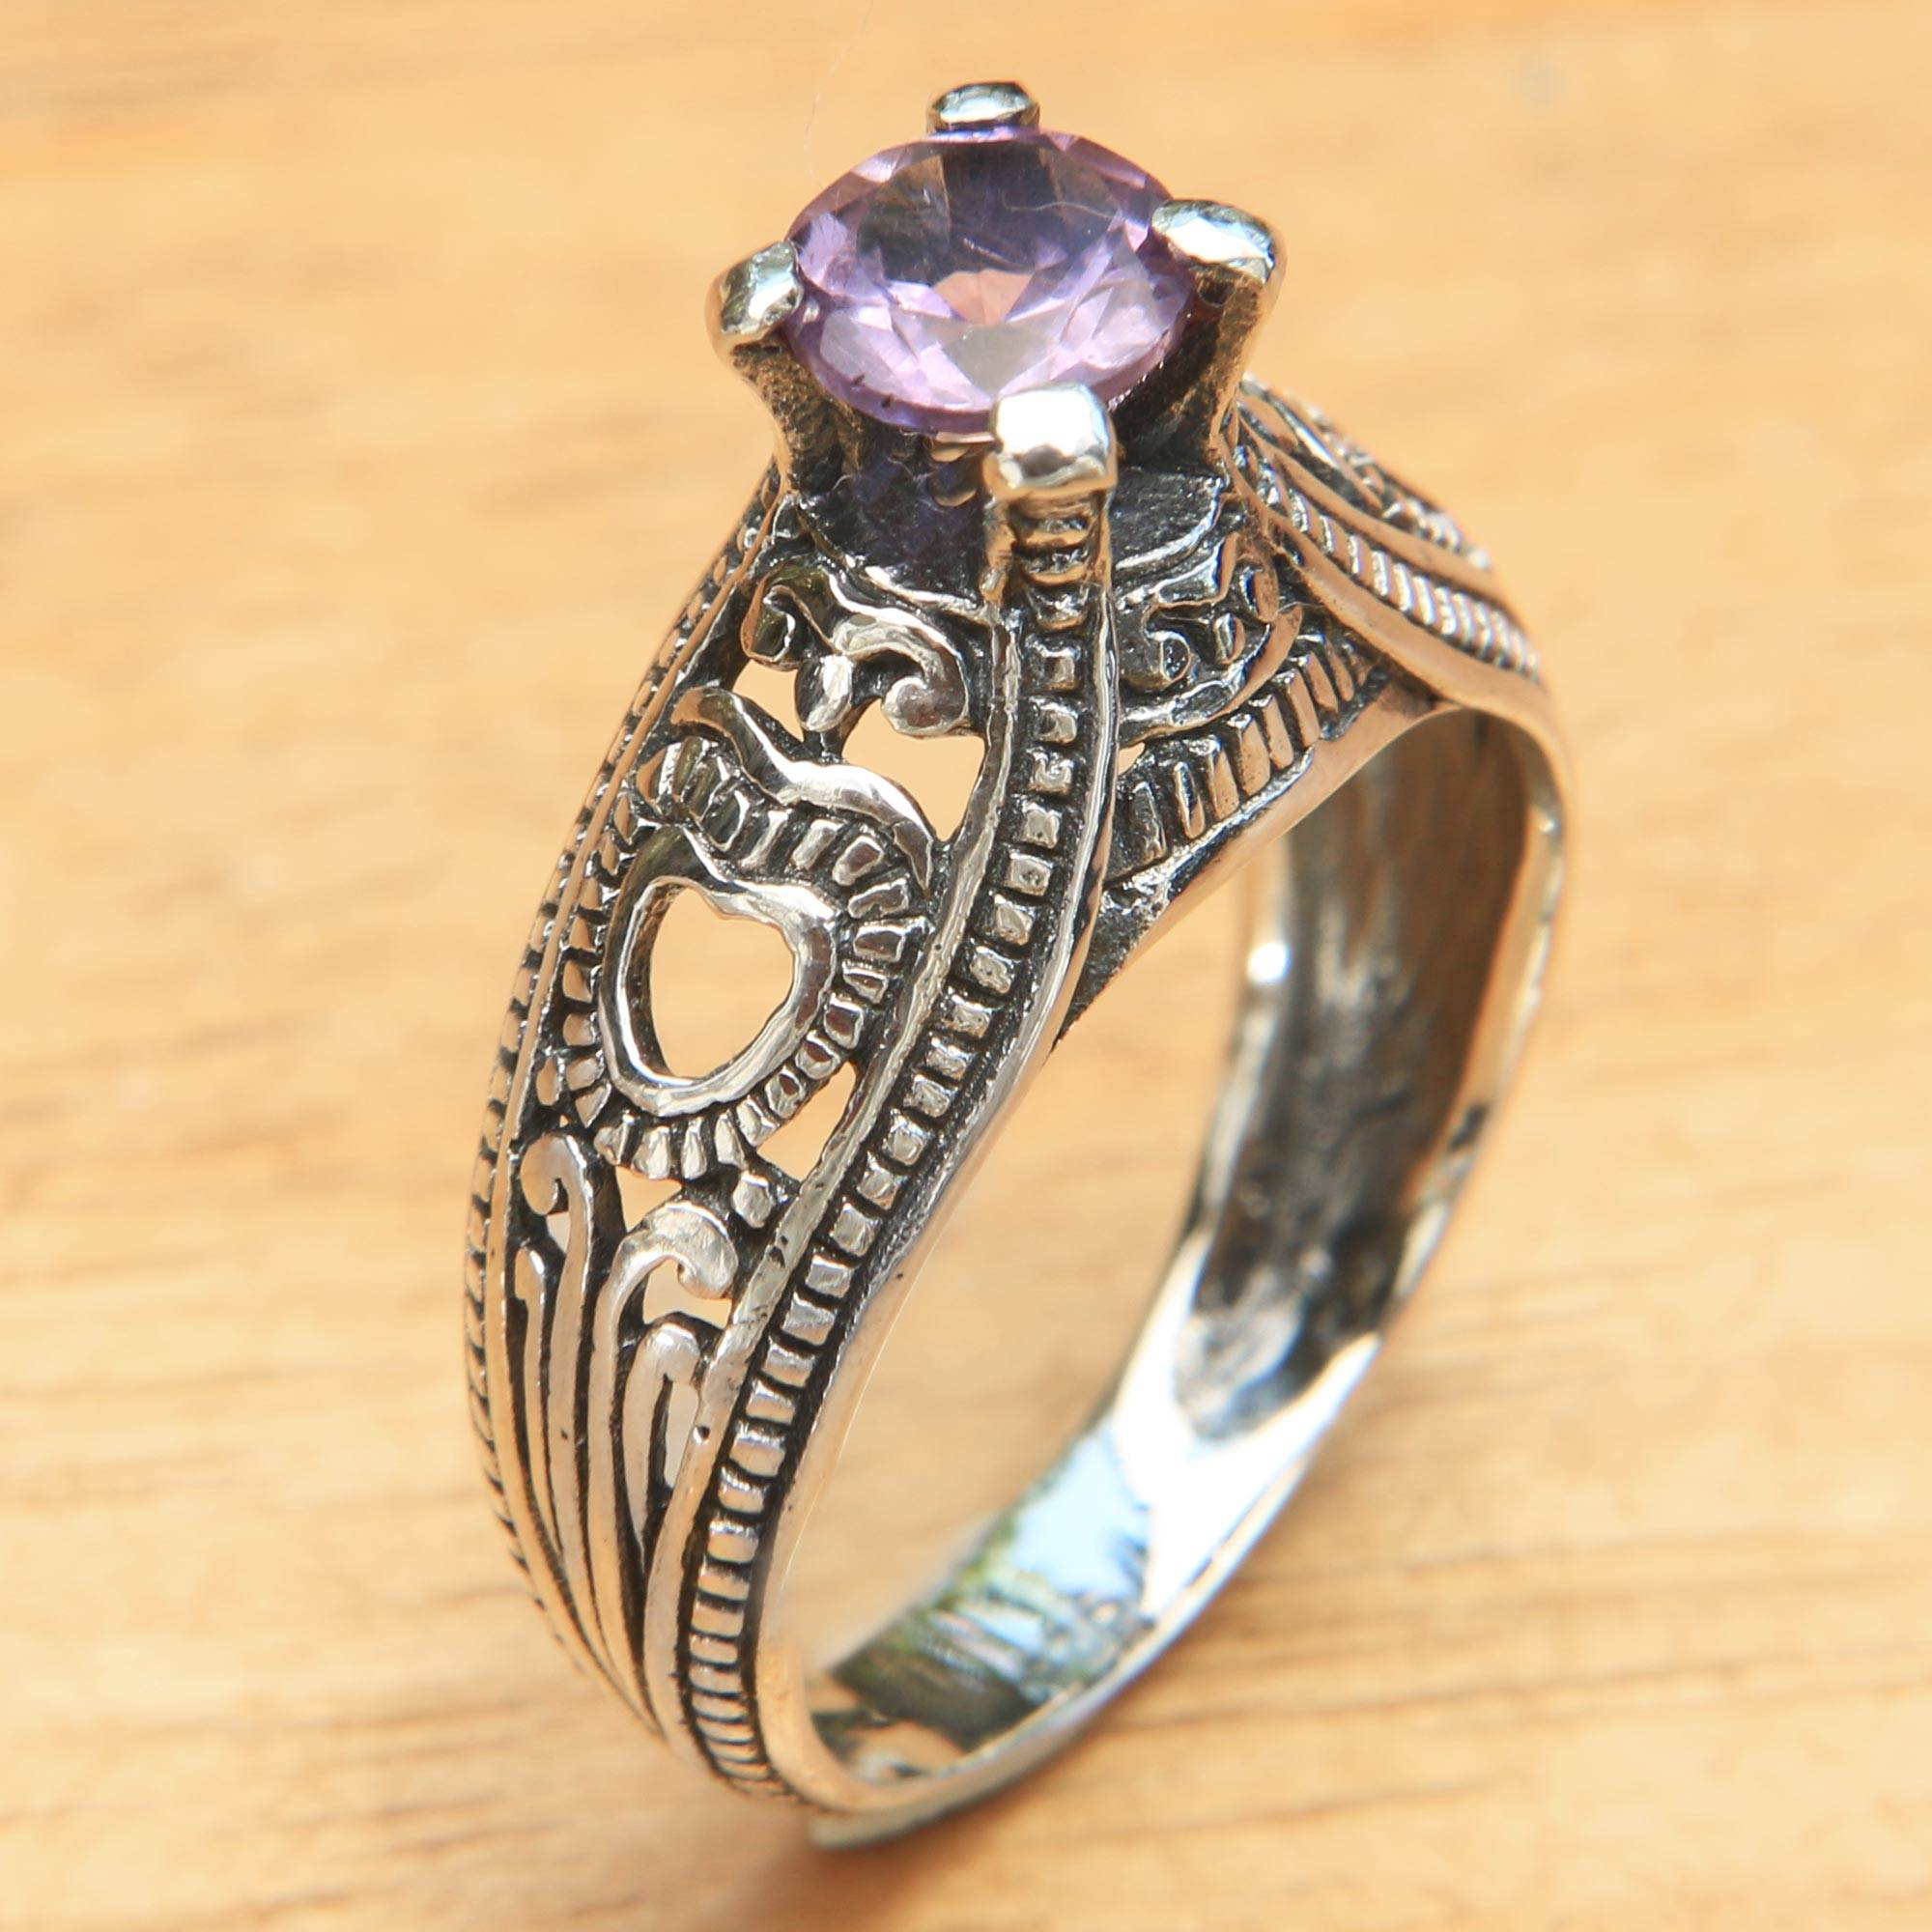 Balinese Amethyst Solitaire with Sterling Silver Cutouts ...